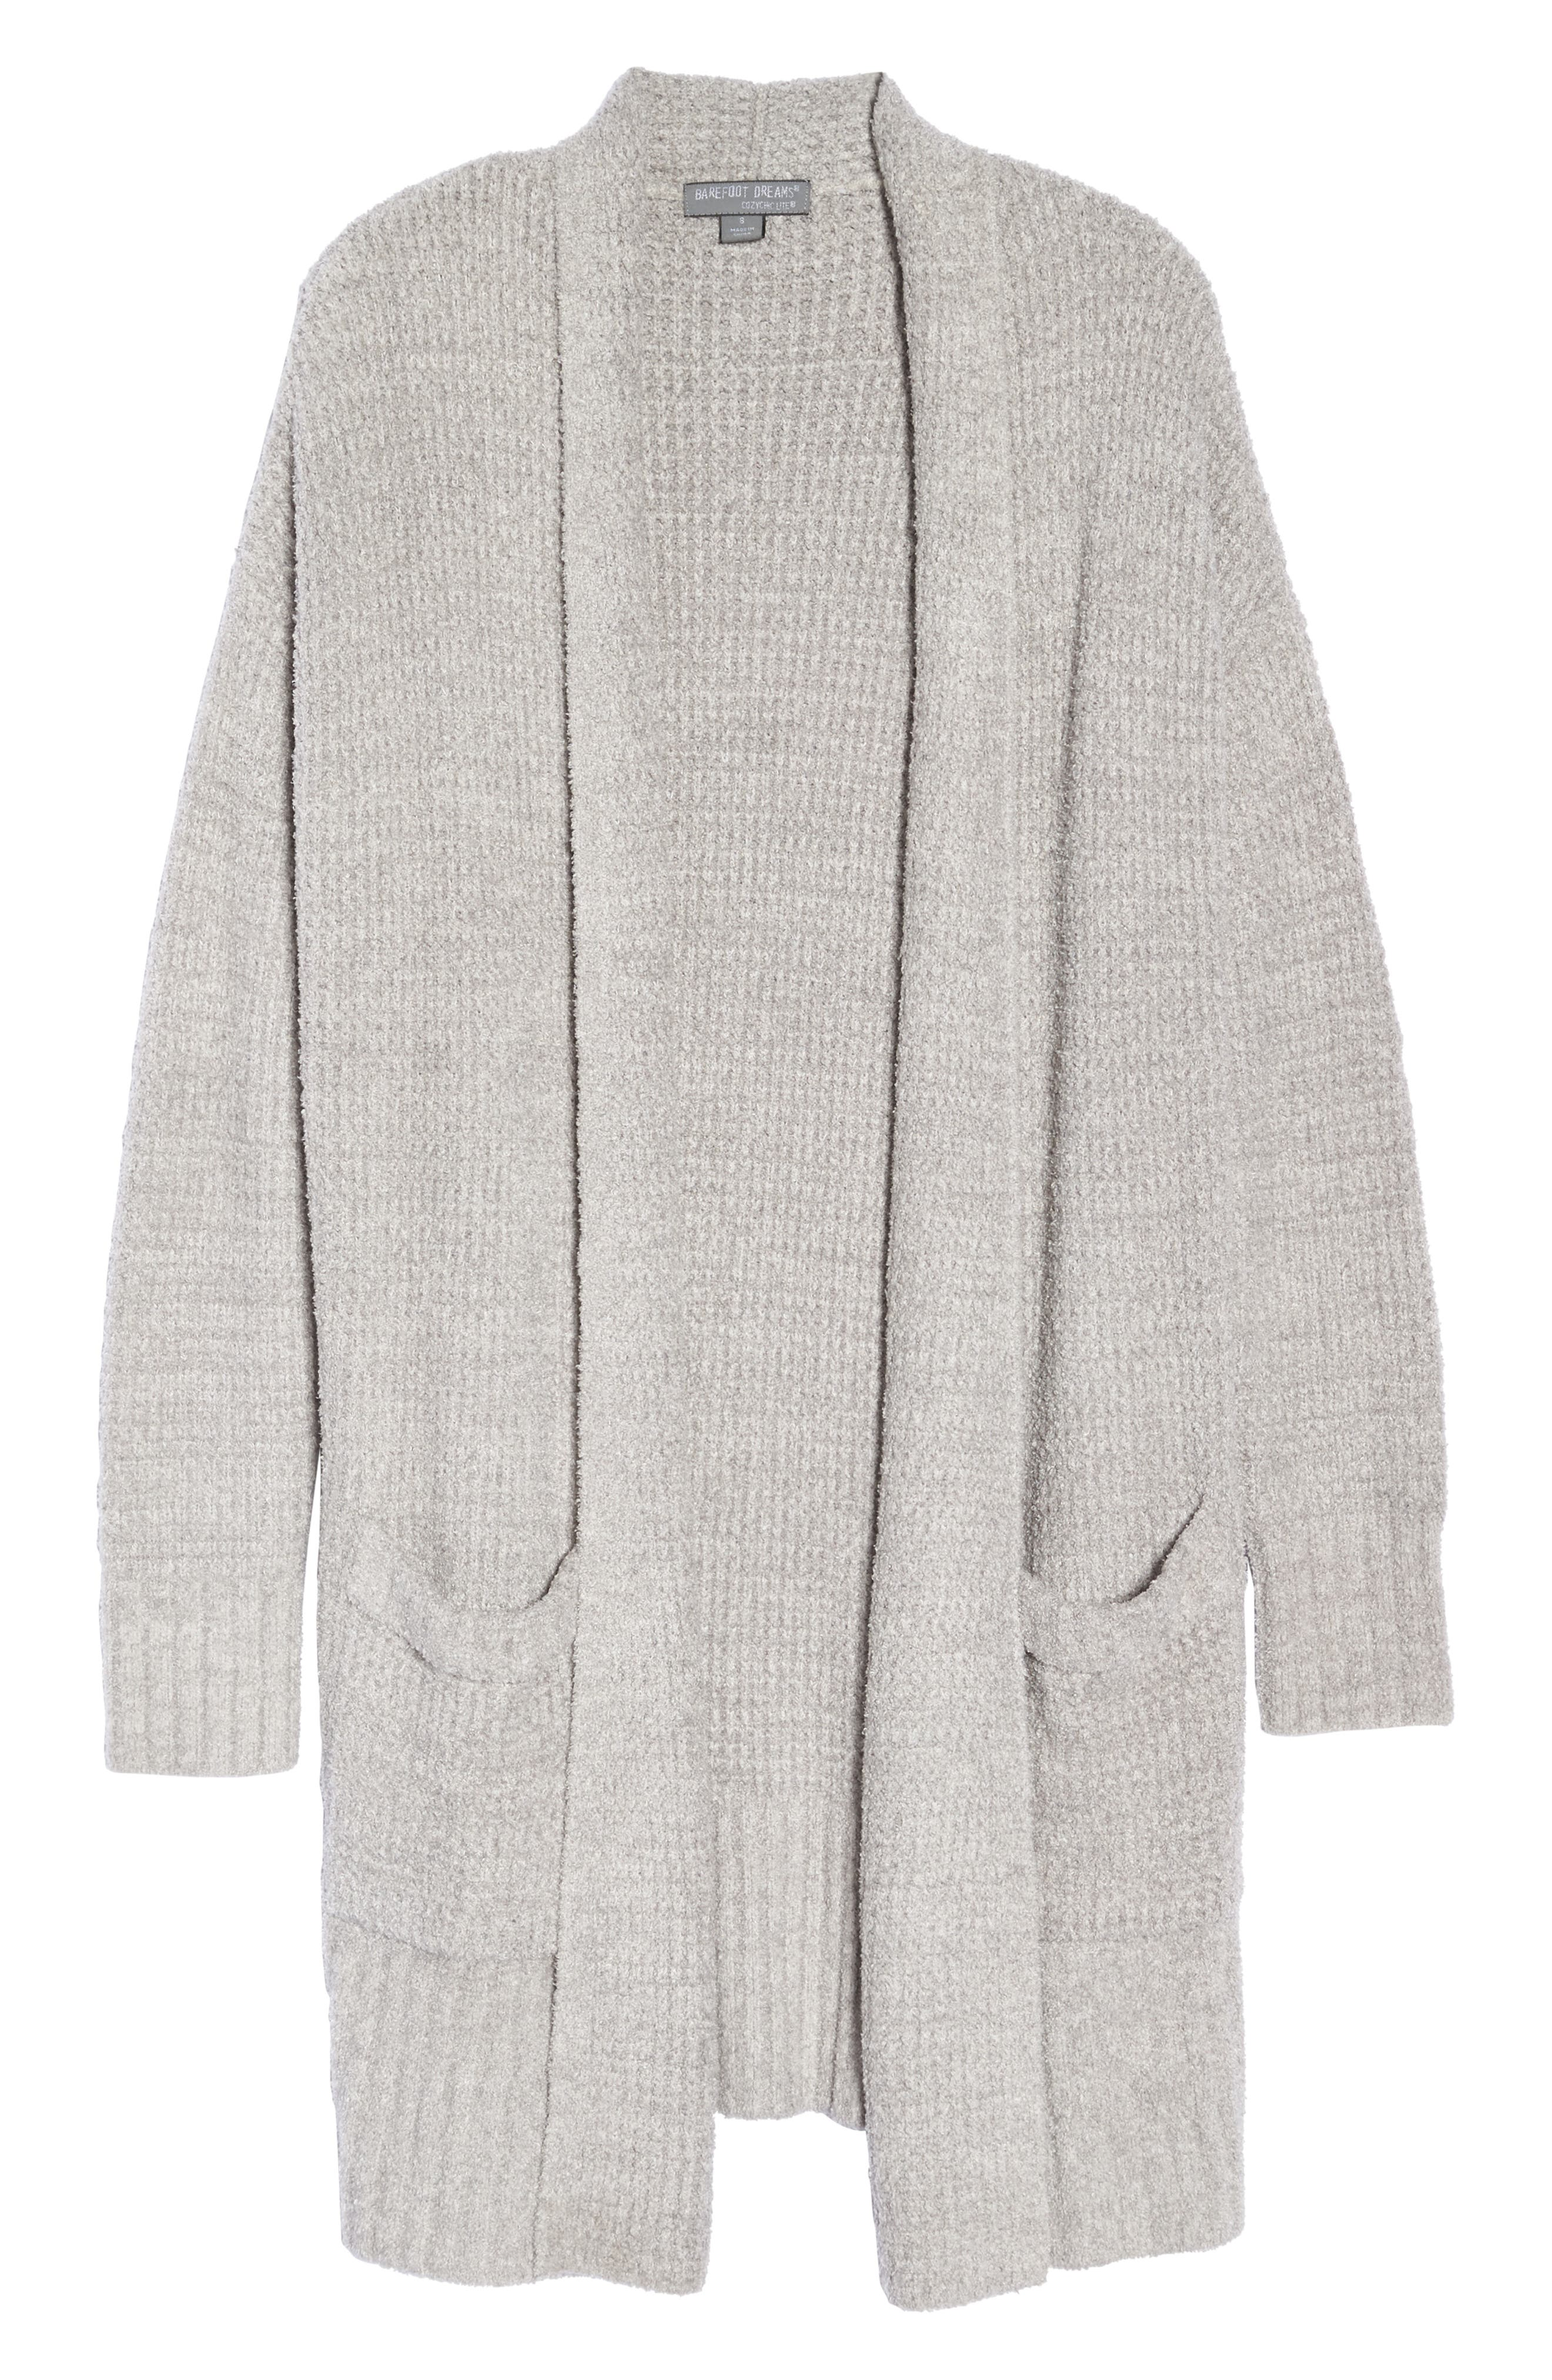 CozyChic<sup>®</sup> Lite Long Weekend Cardigan,                             Alternate thumbnail 6, color,                             PEWTER/ SILVER